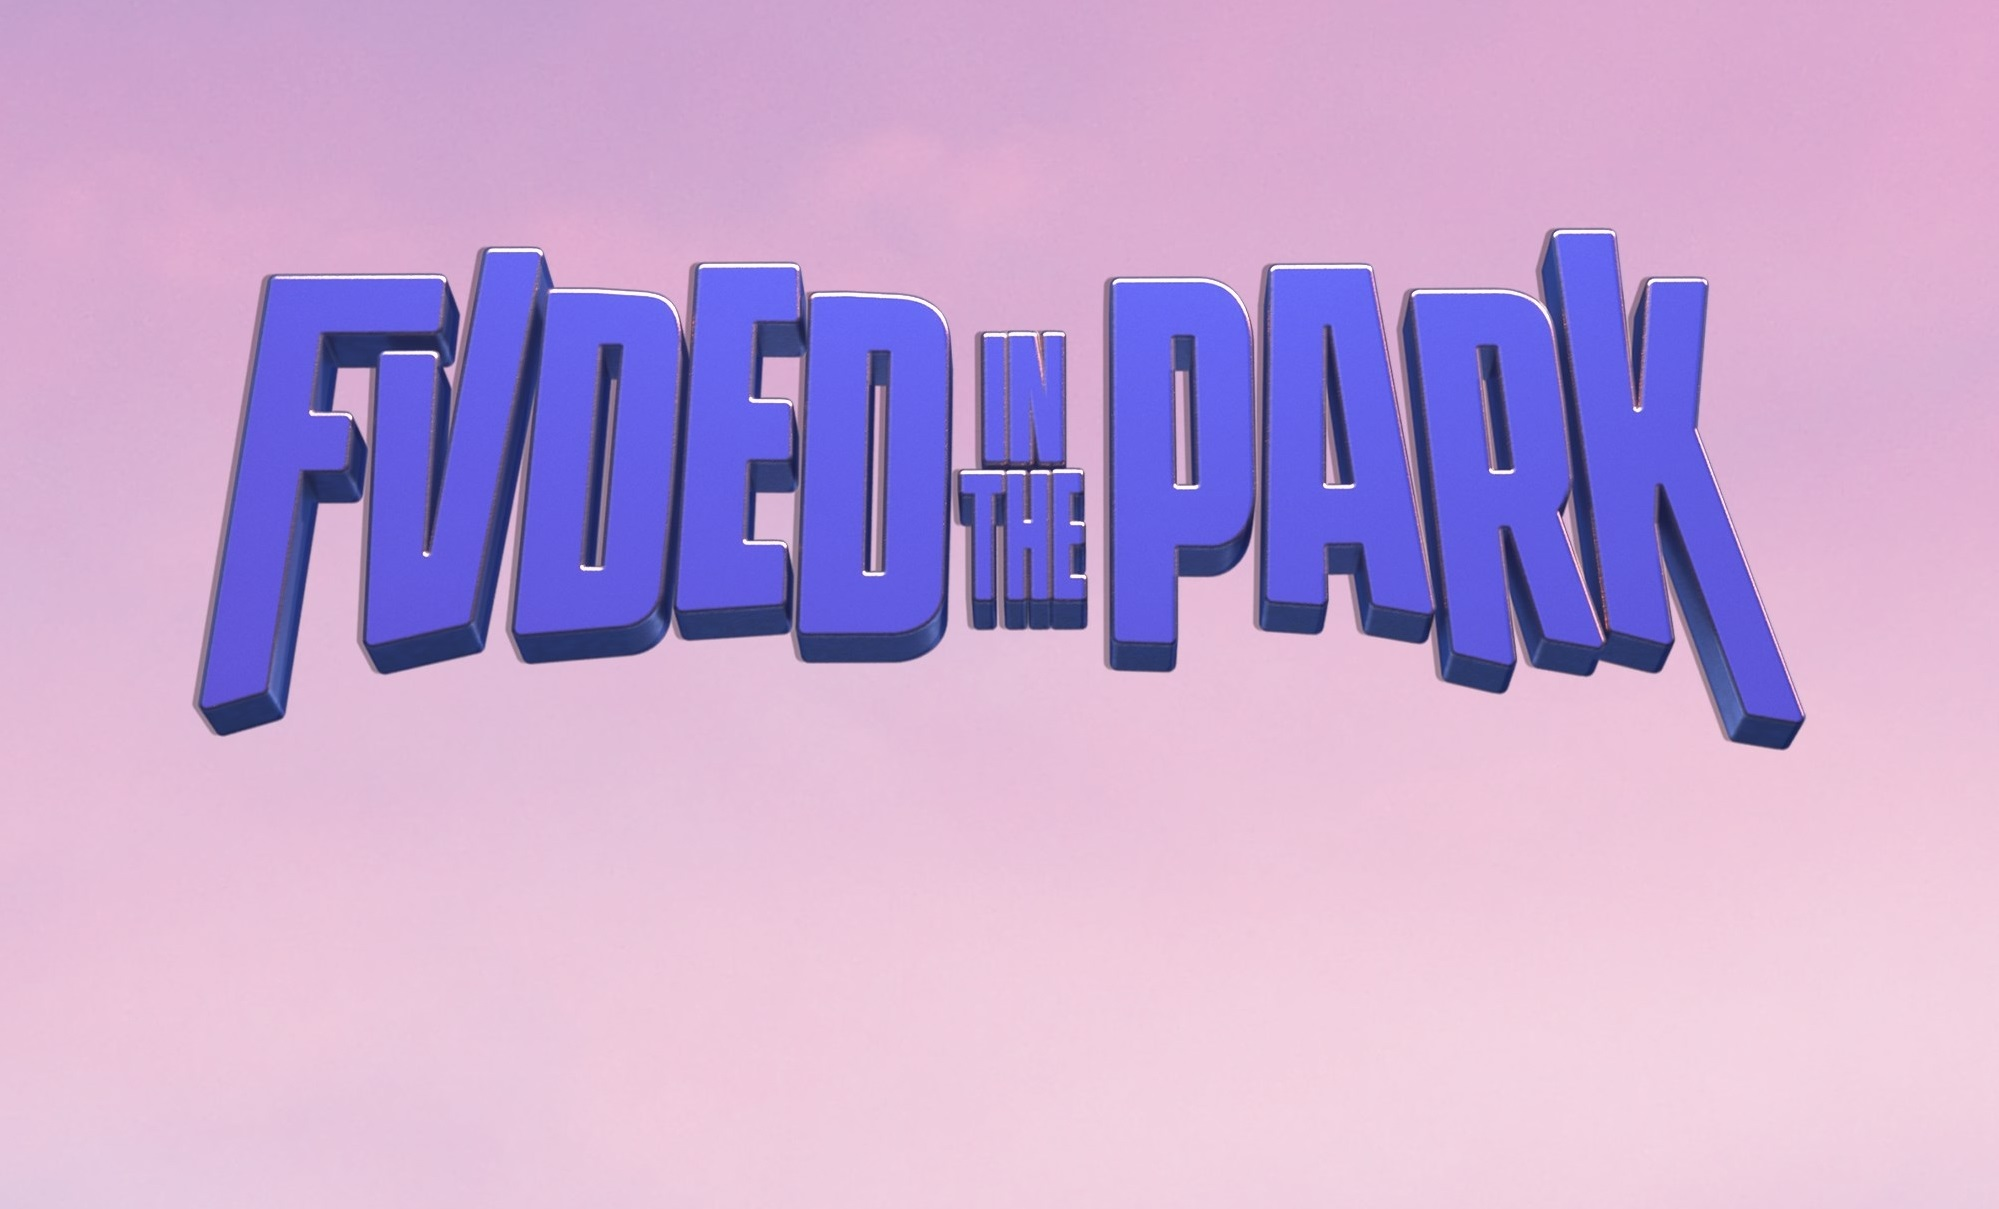 Fvded In The Park 2021 banner title text